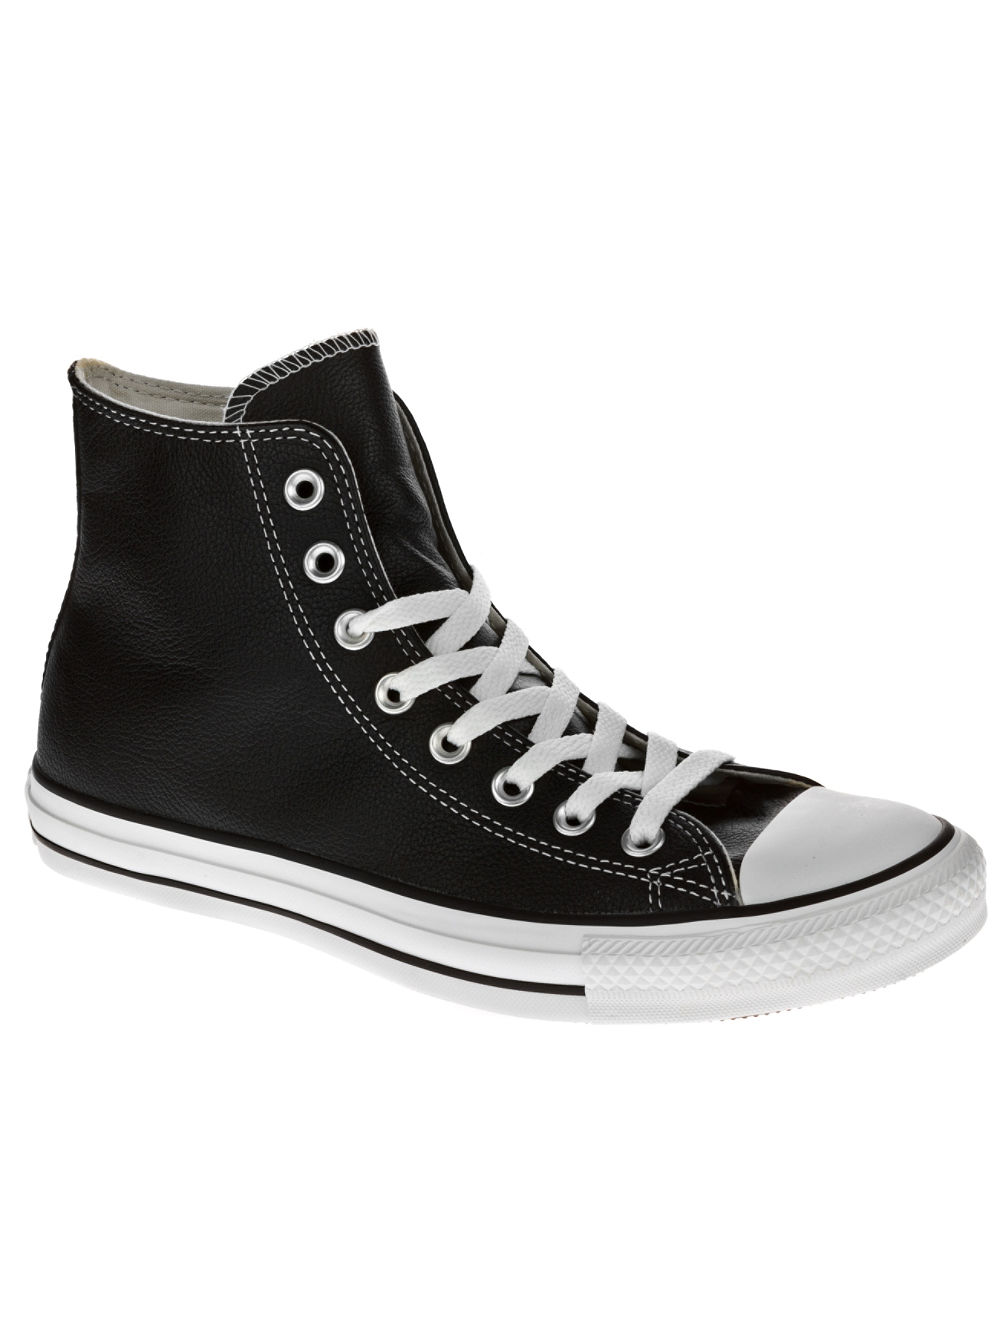 Sneakers Converse Chuck Taylor AS Hi Basic Leather Sneakers